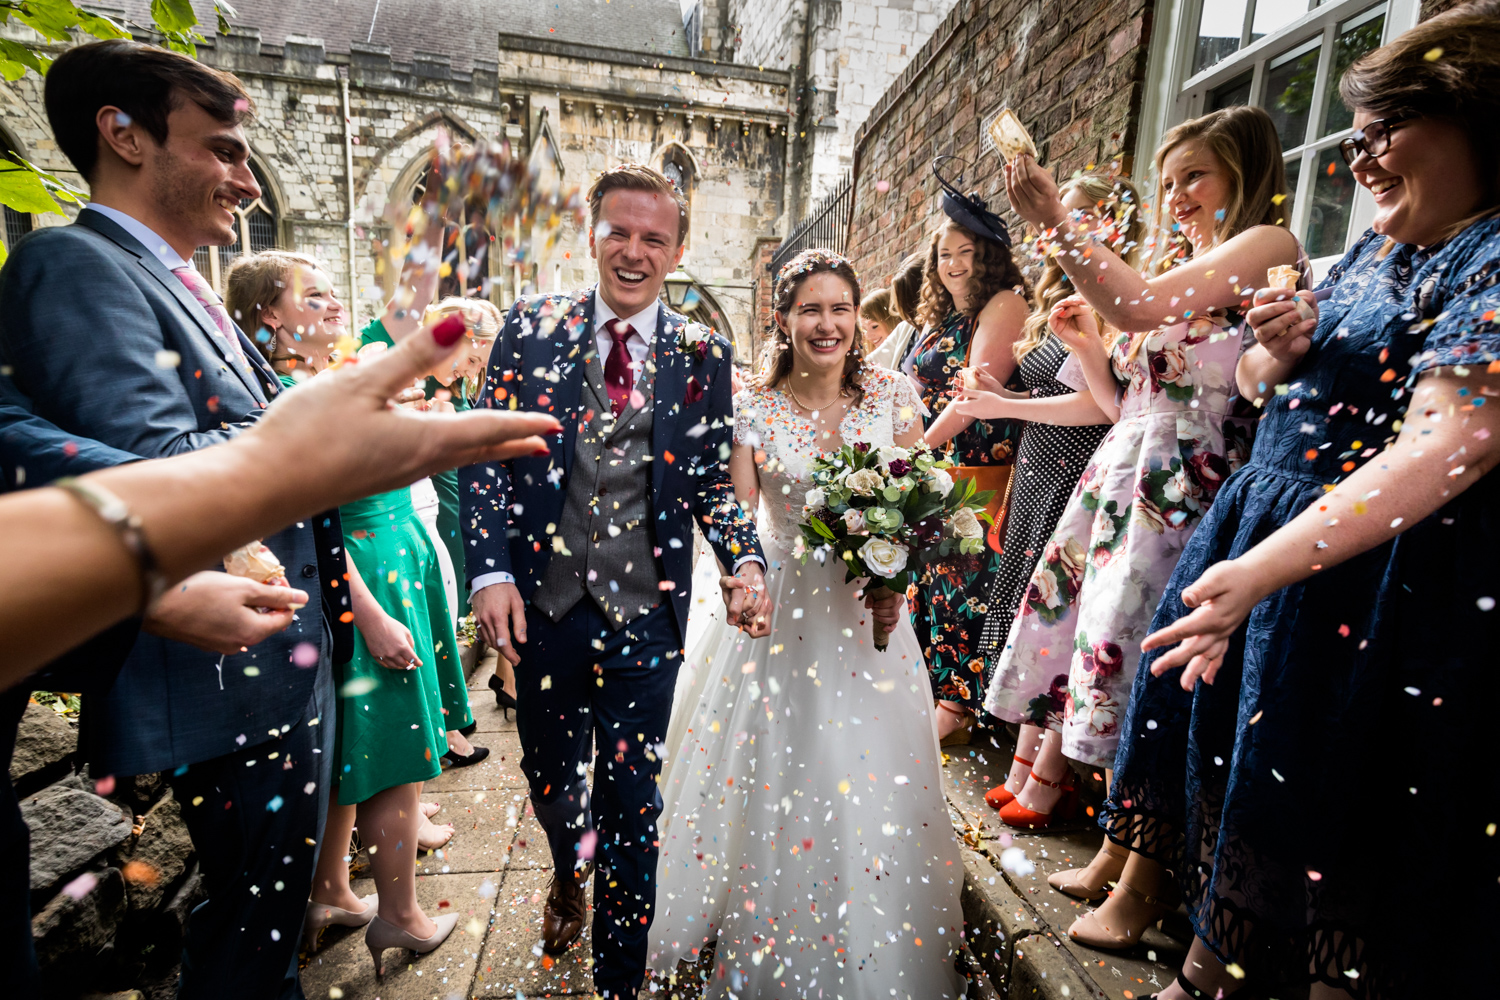 Principal Hotel York Wedding Photographer - Couple being showered with confetti